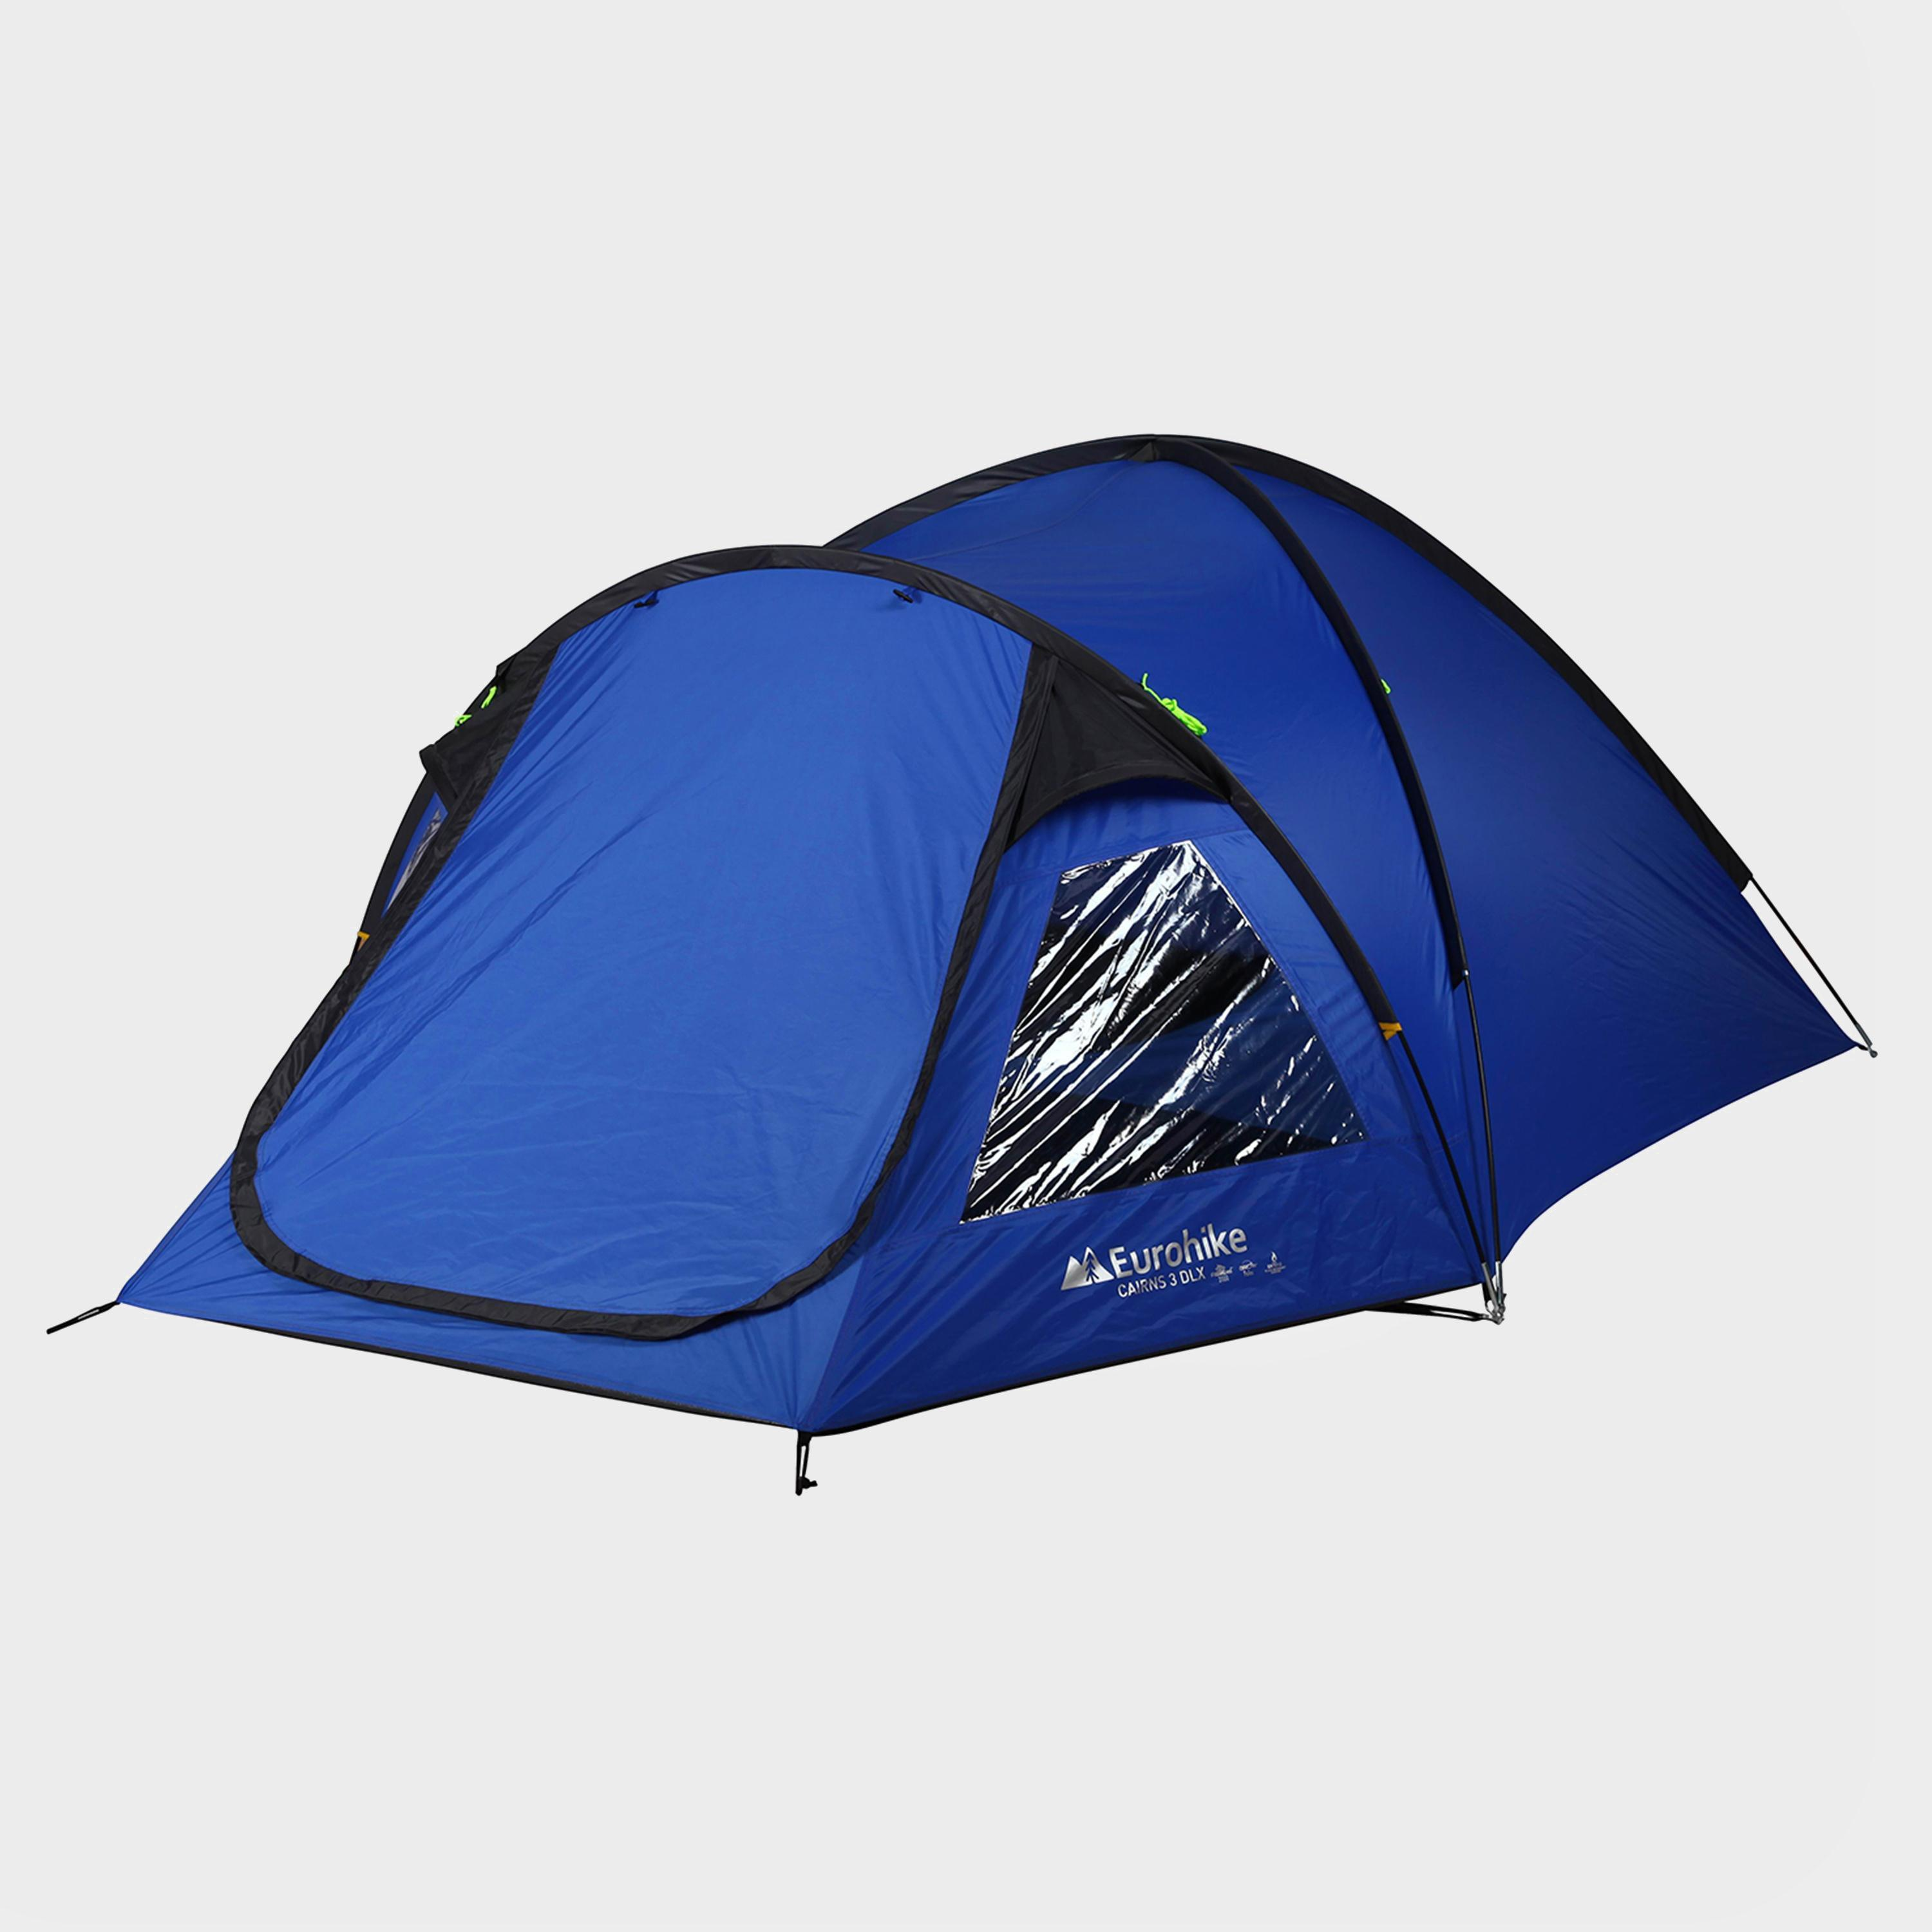 Cairns 3 Deluxe Tent  sc 1 st  Millets & Eurohike Cairns 3 Deluxe Tent